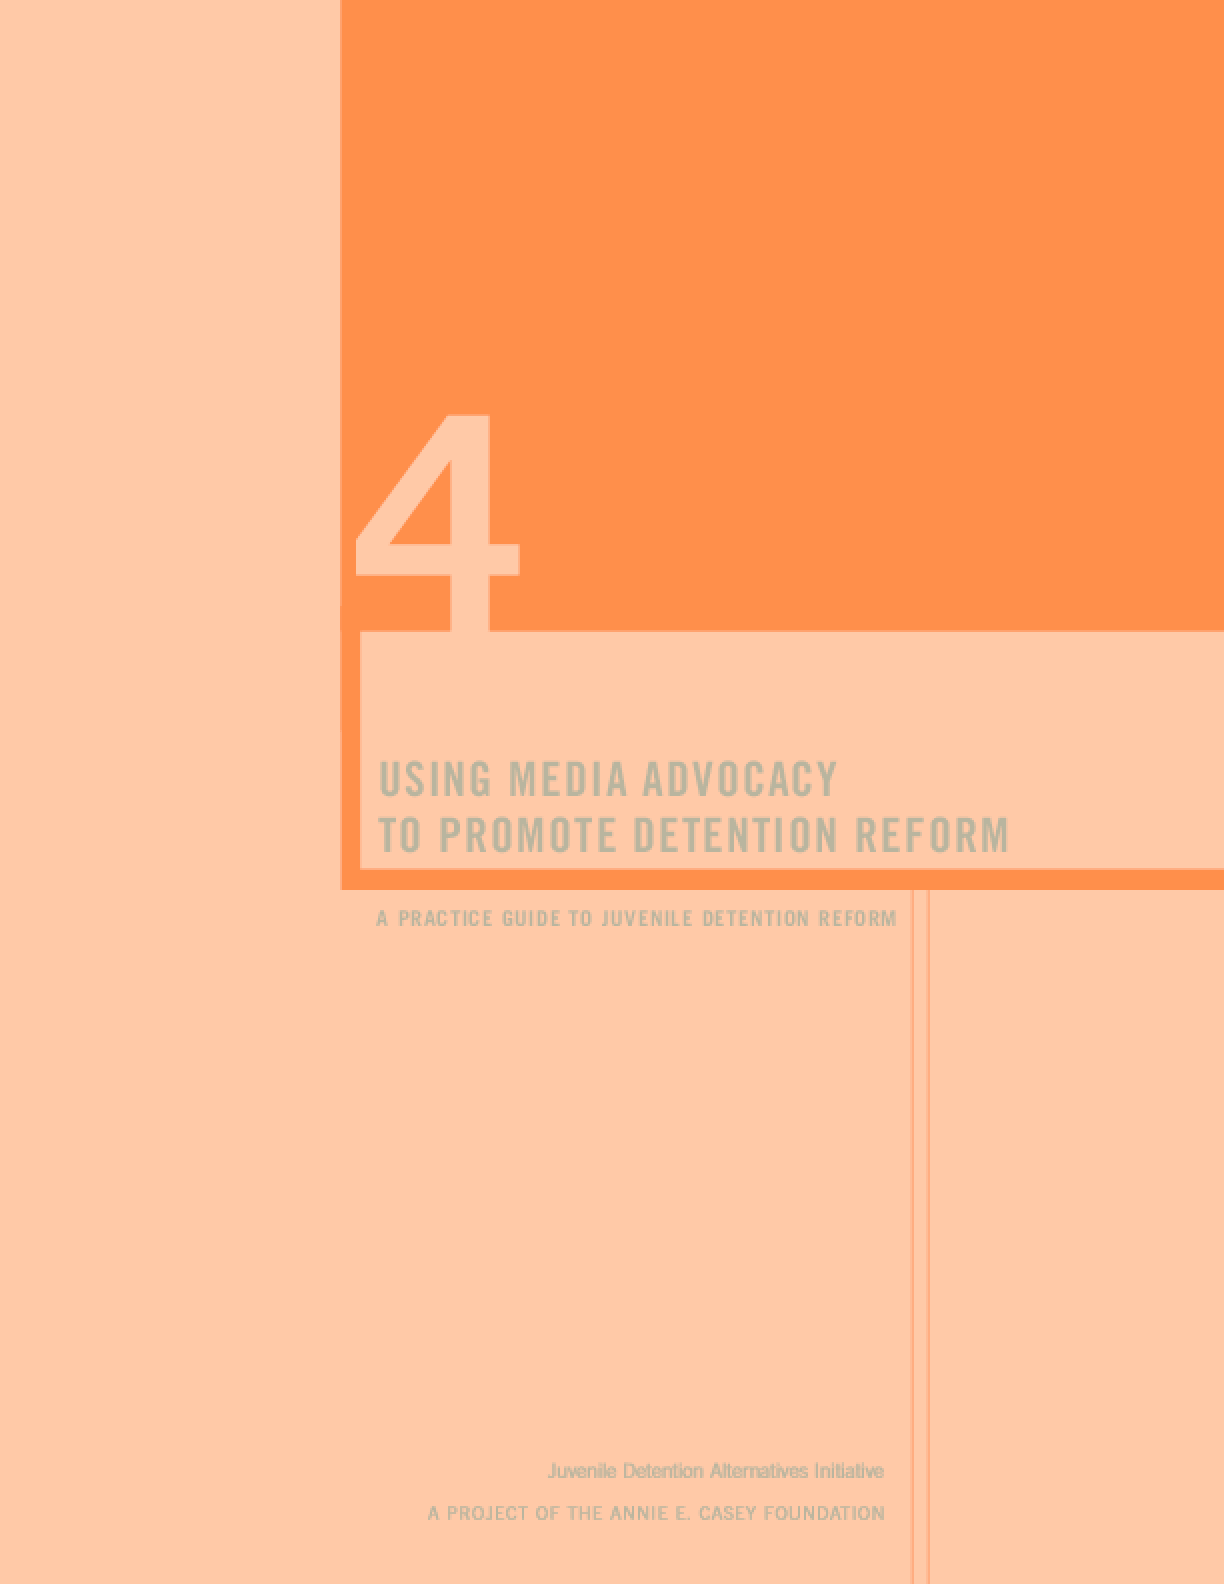 Using Media Advocacy to Promote Detention Reform: A Practice Guide to Juvenile Detention Reform